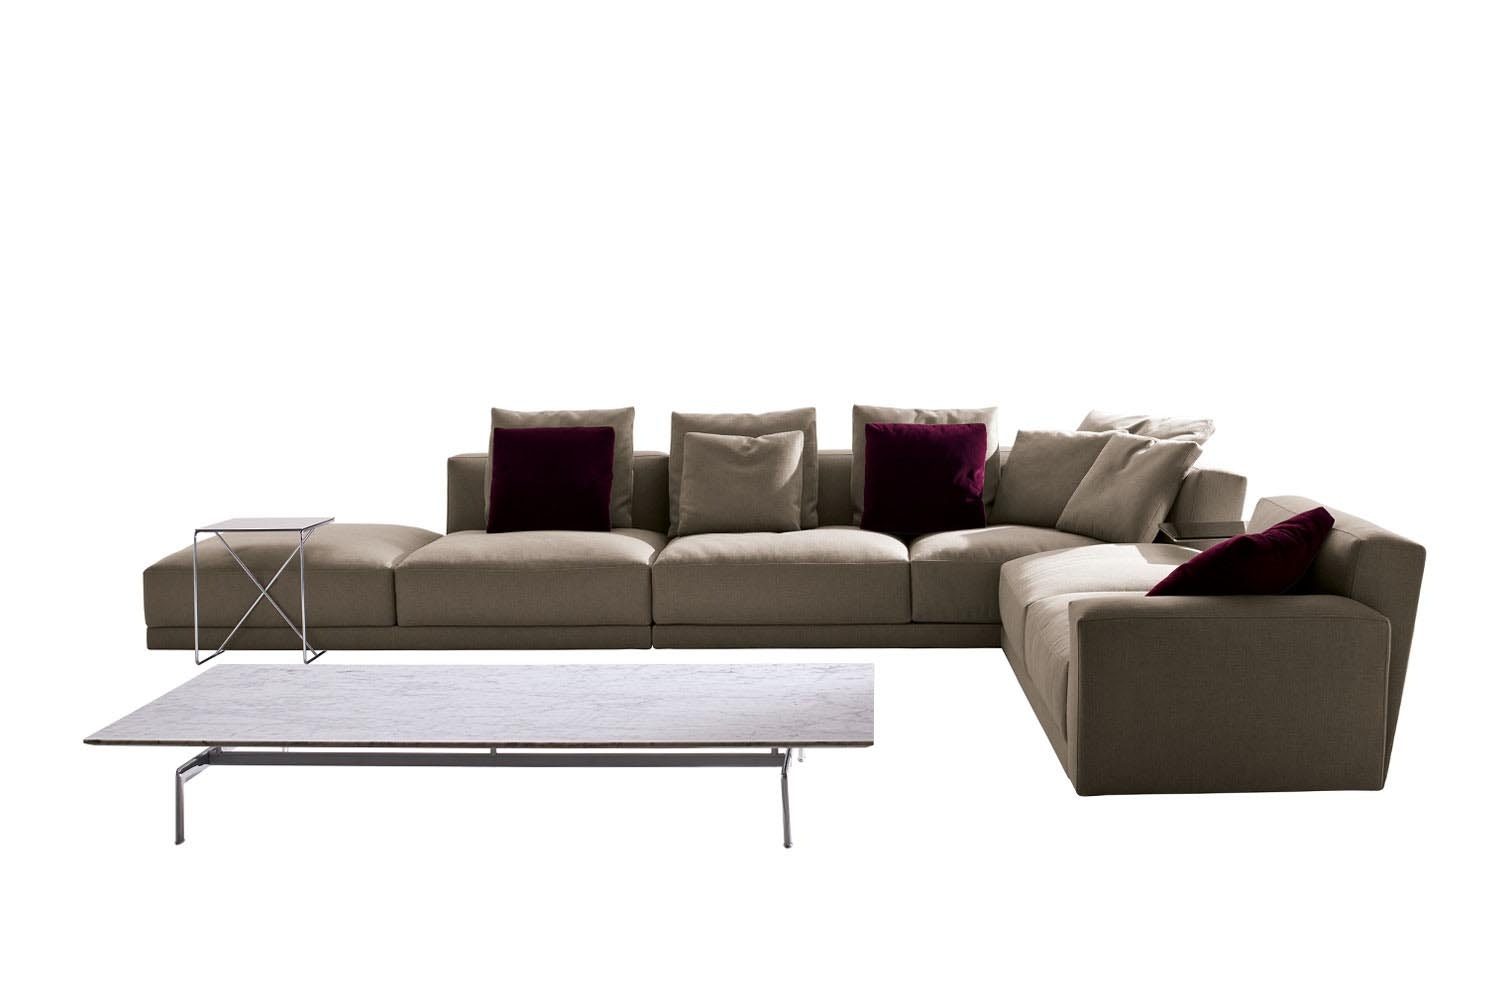 Luis 2012 Sofa by Antonio Citterio for B&B Italia